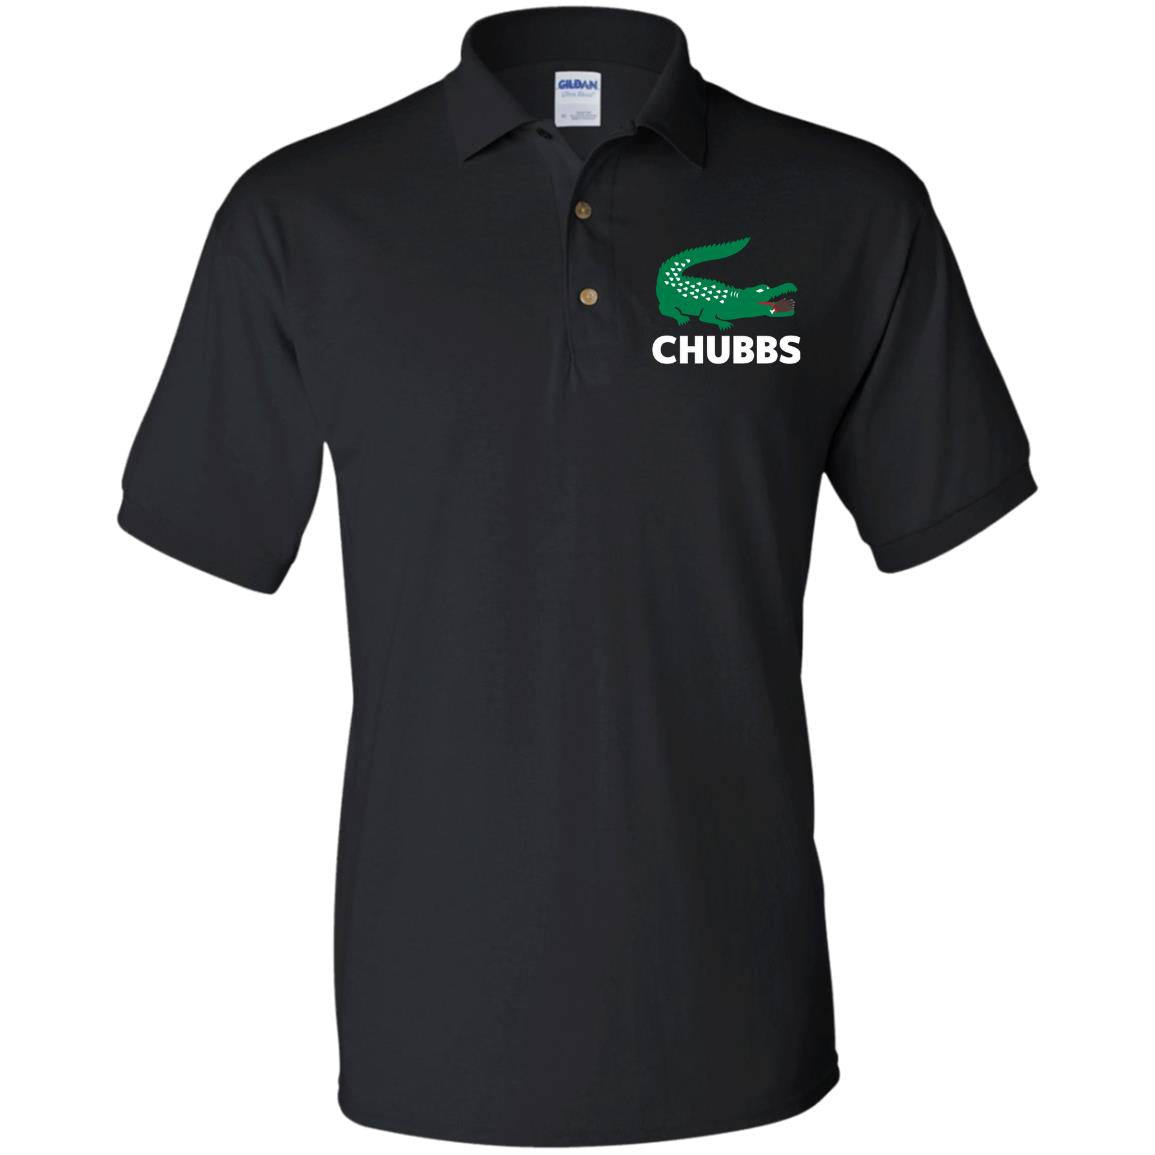 Chubbs Polo Shirt (Embroidered)